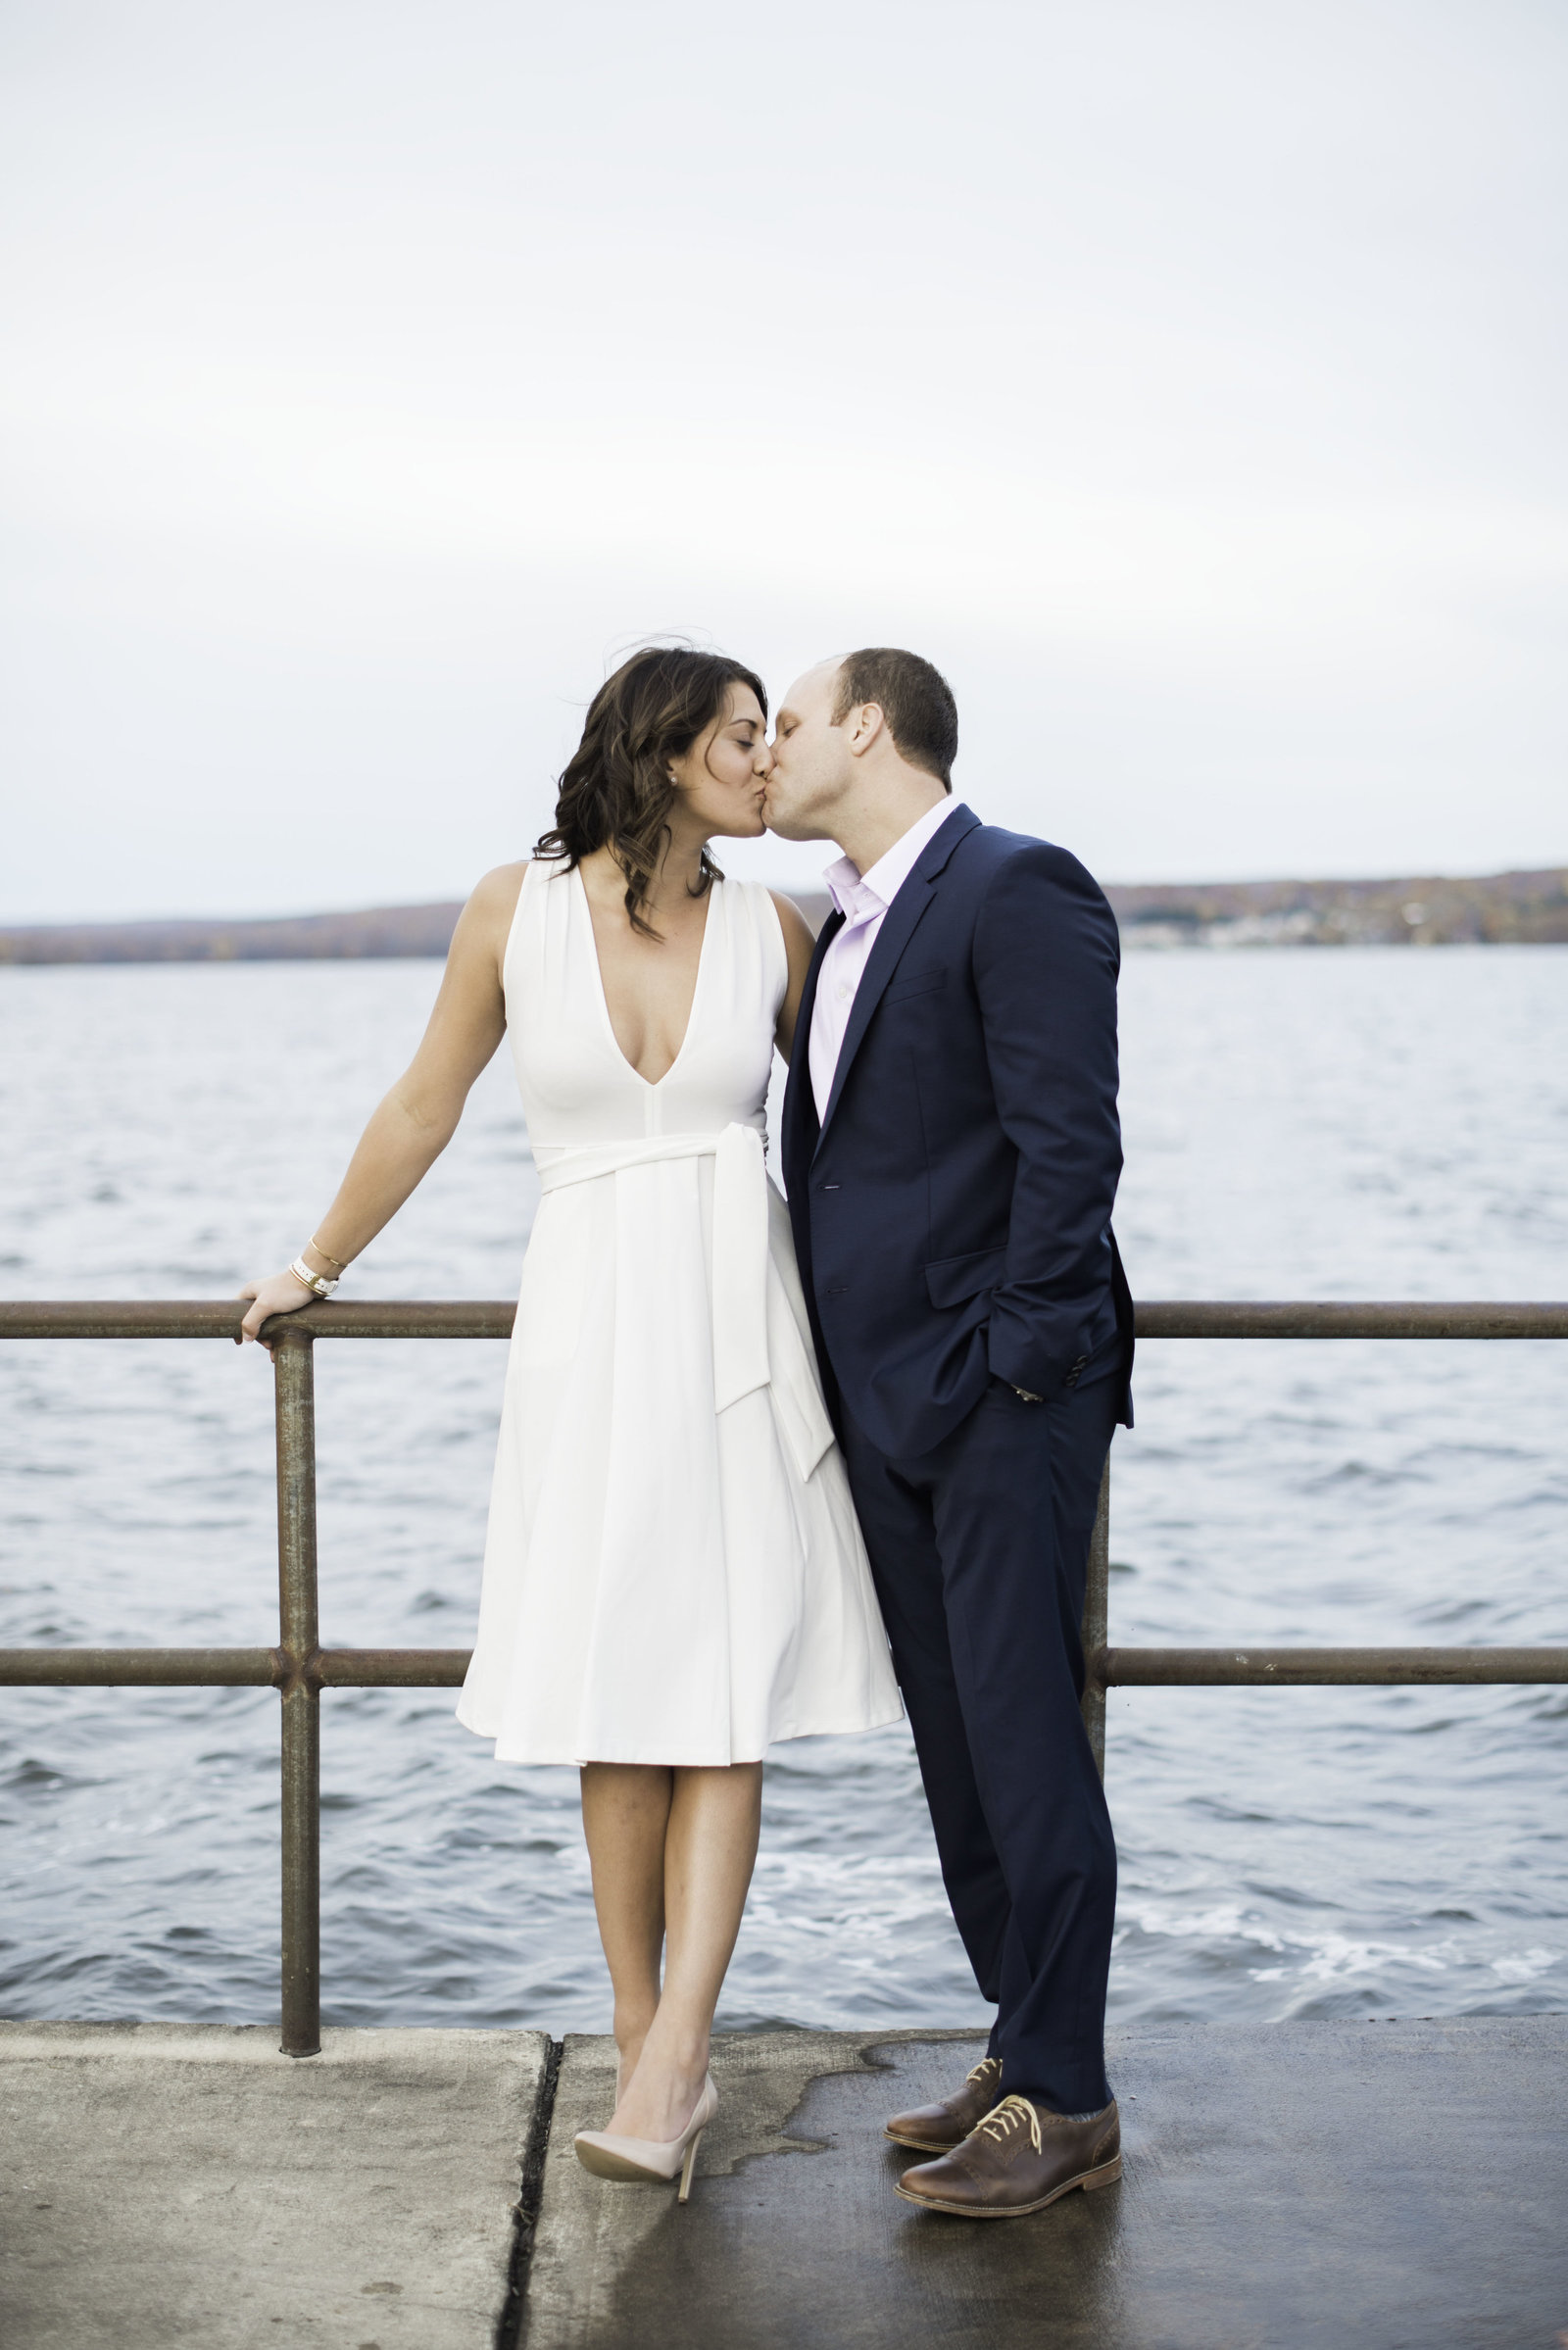 Chautauqua Institution Engagement Session by the Lake